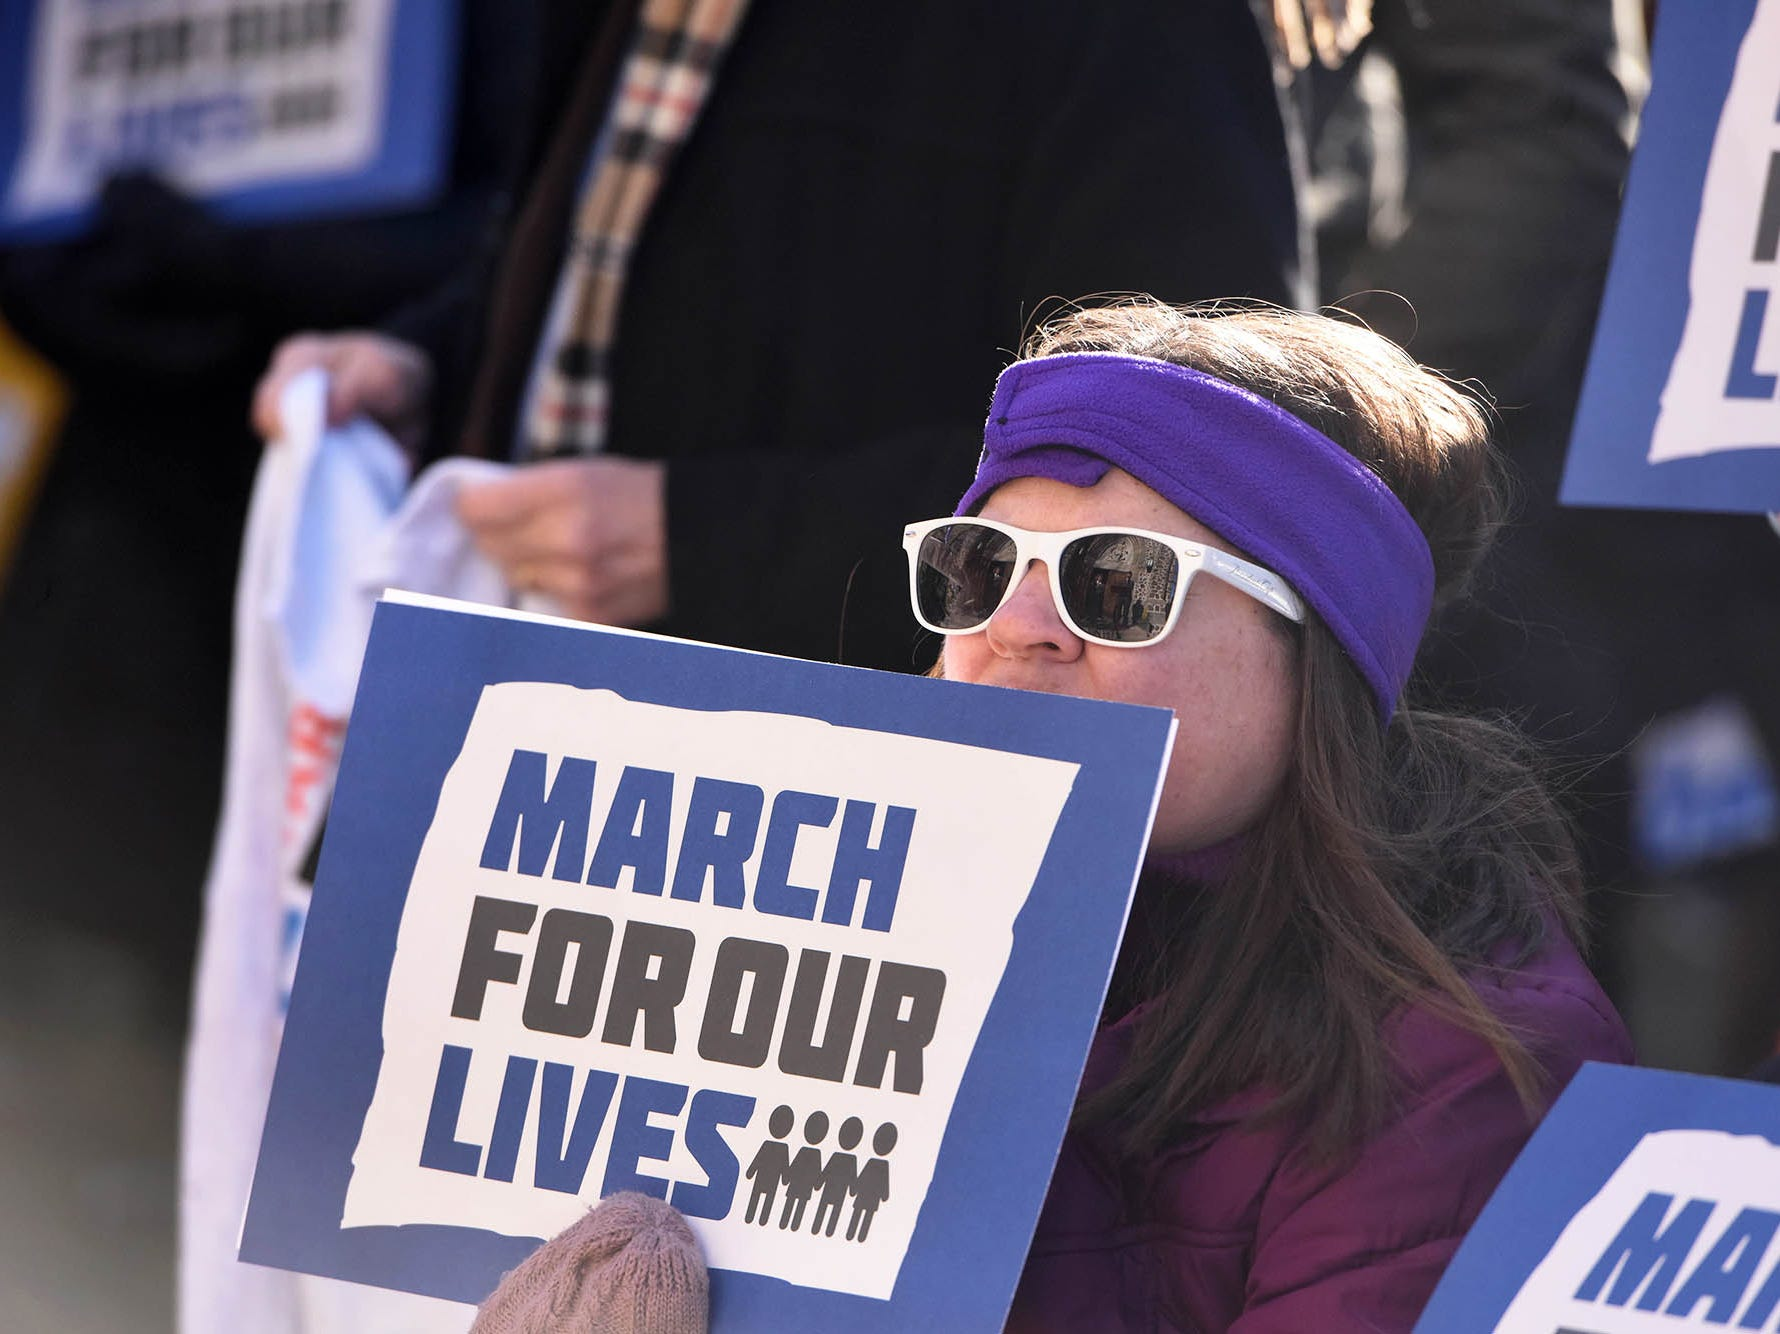 """20031857A.3.24.2018.Montclair.March for our Lives rallies:Participants in """"March for our Lives"""" rally iat St. James Episcopal Church in Montclair."""